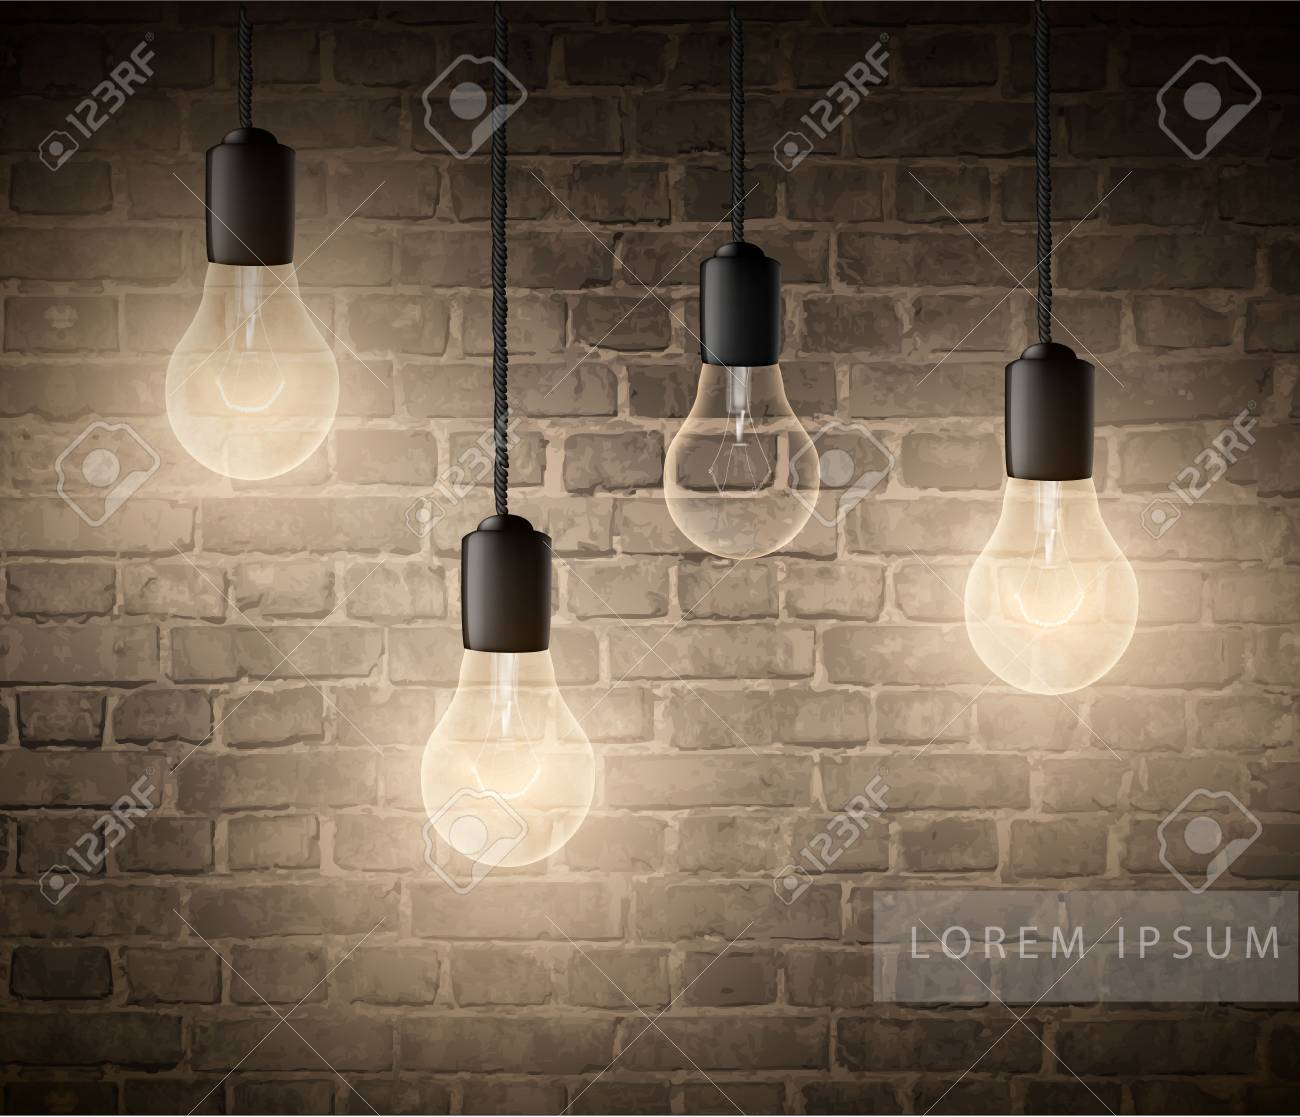 Glowing Light Bulbs Set Of Hanging Lights On A Brick Wall Royalty Free Cliparts Vectors And Stock Illustration Image 110624341